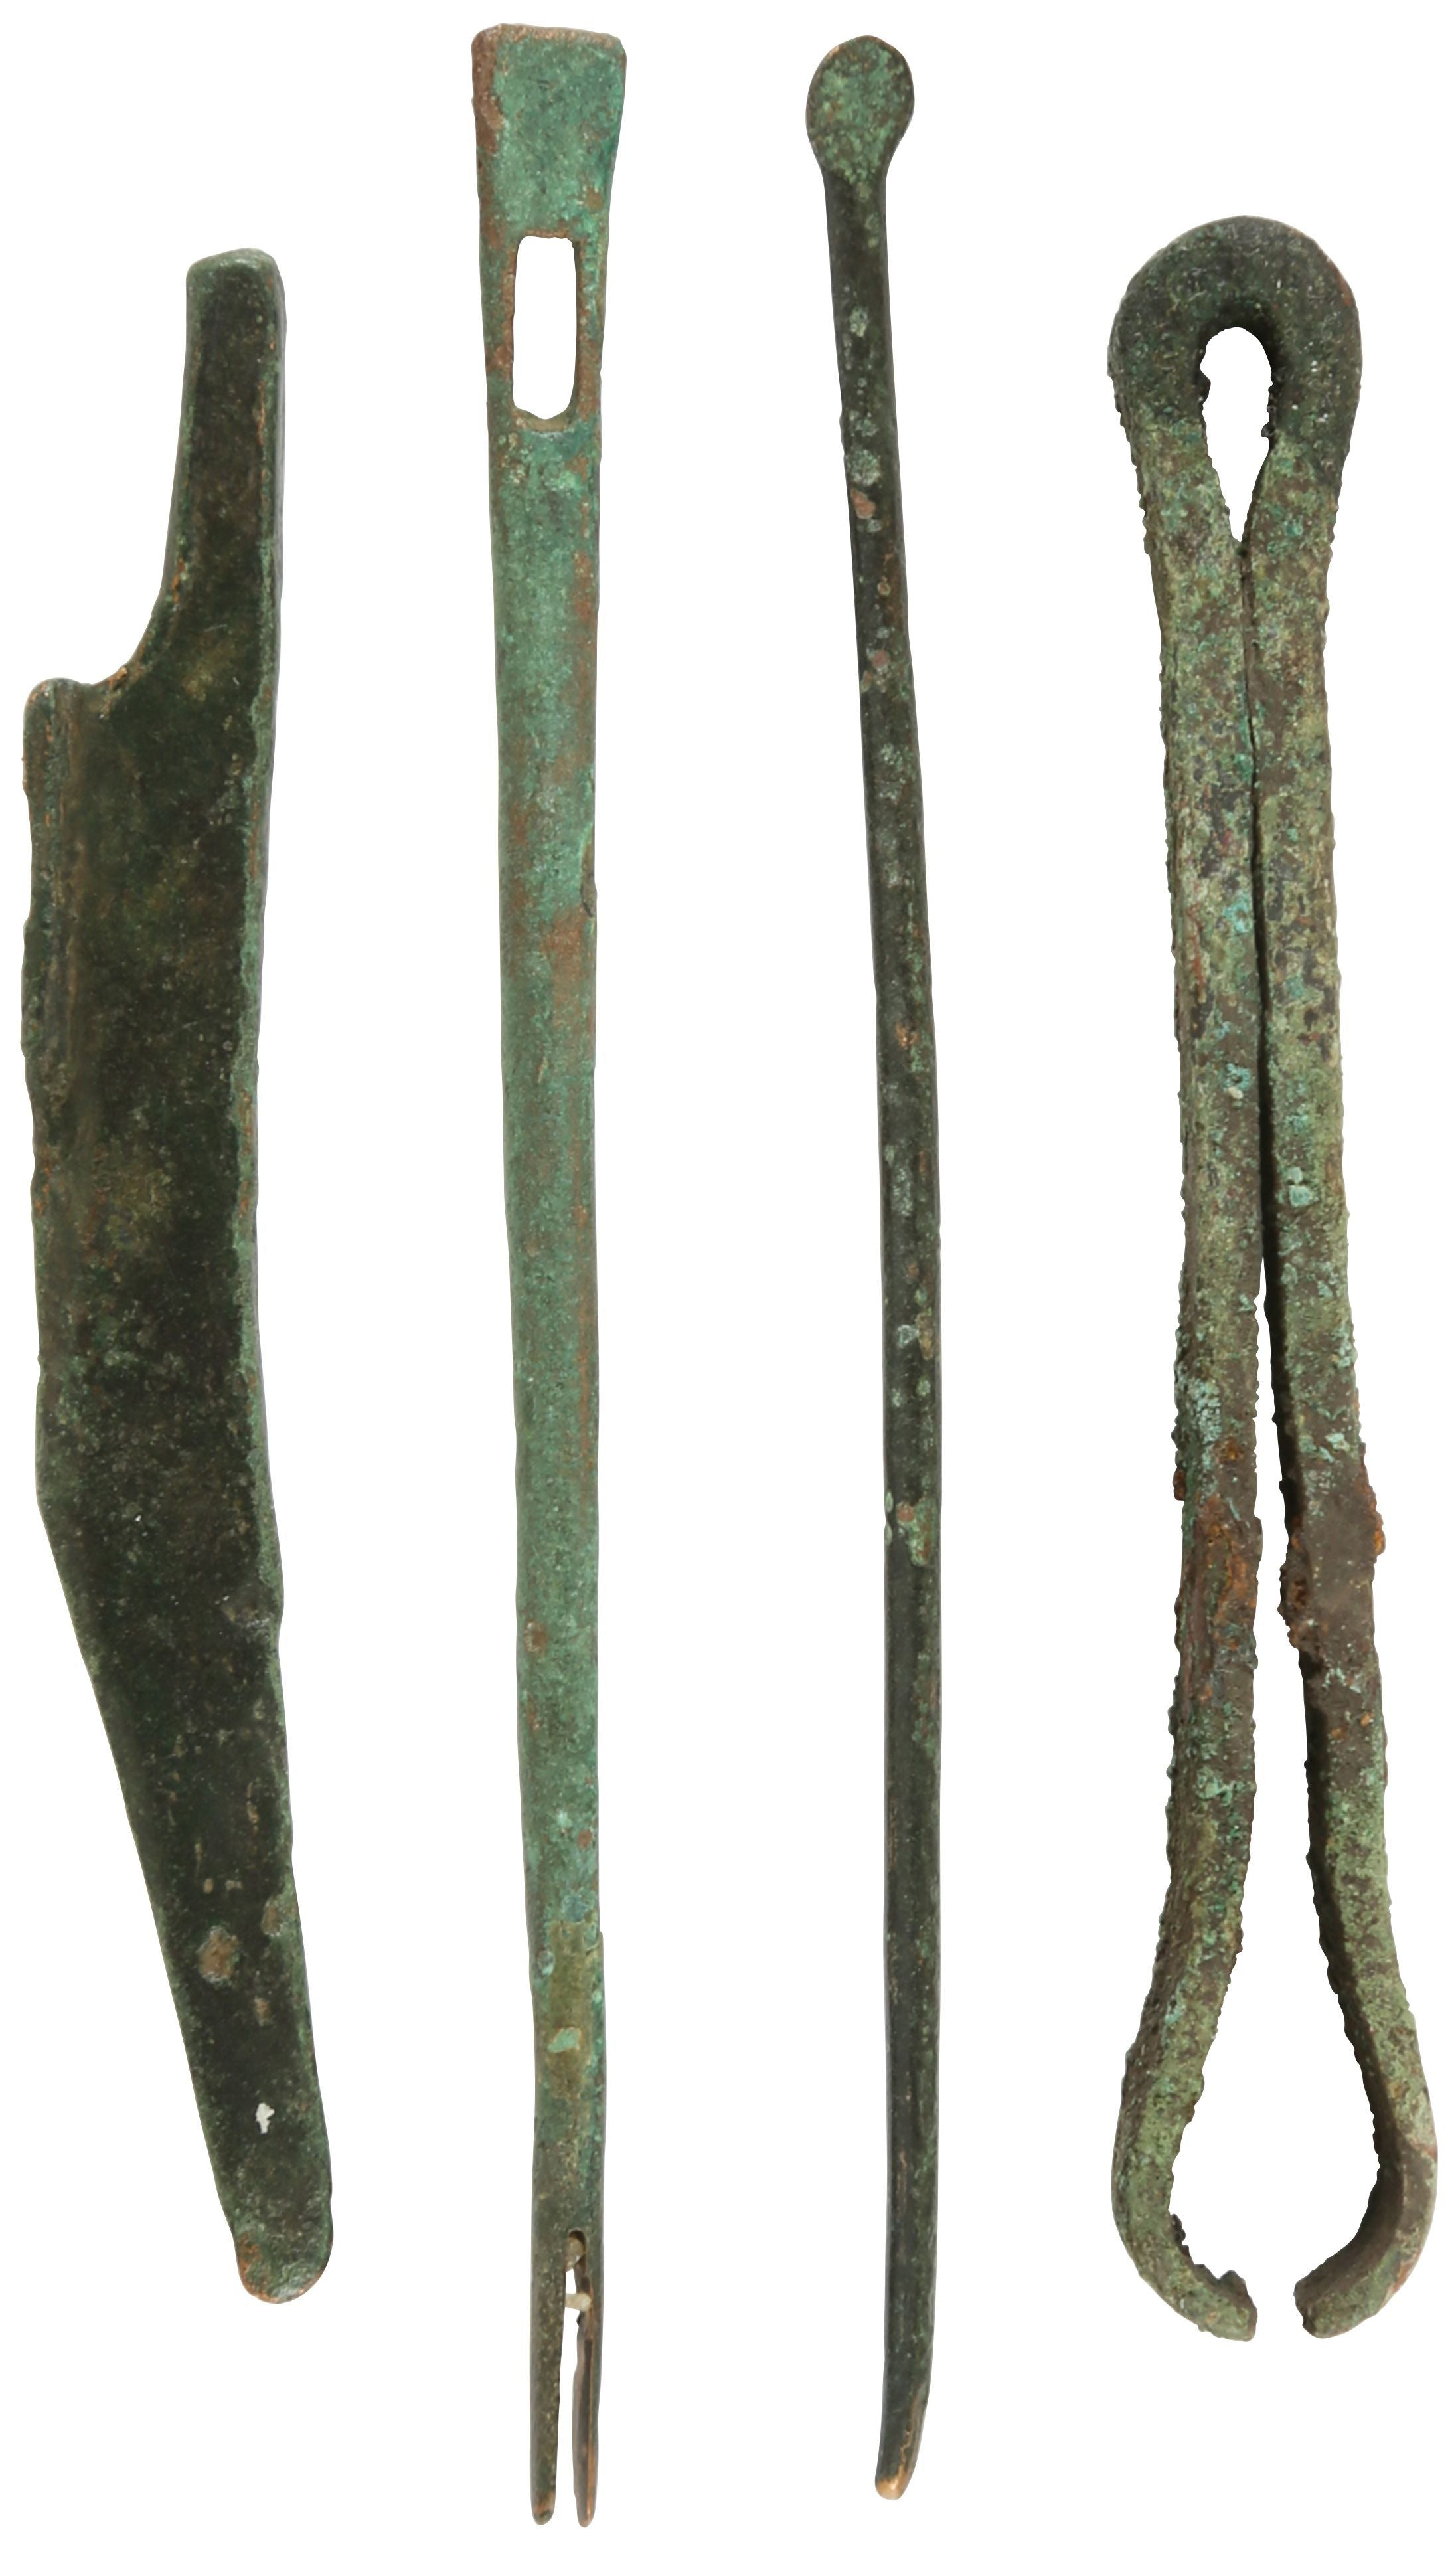 Medical Instruments C.100-300 Ad - Product